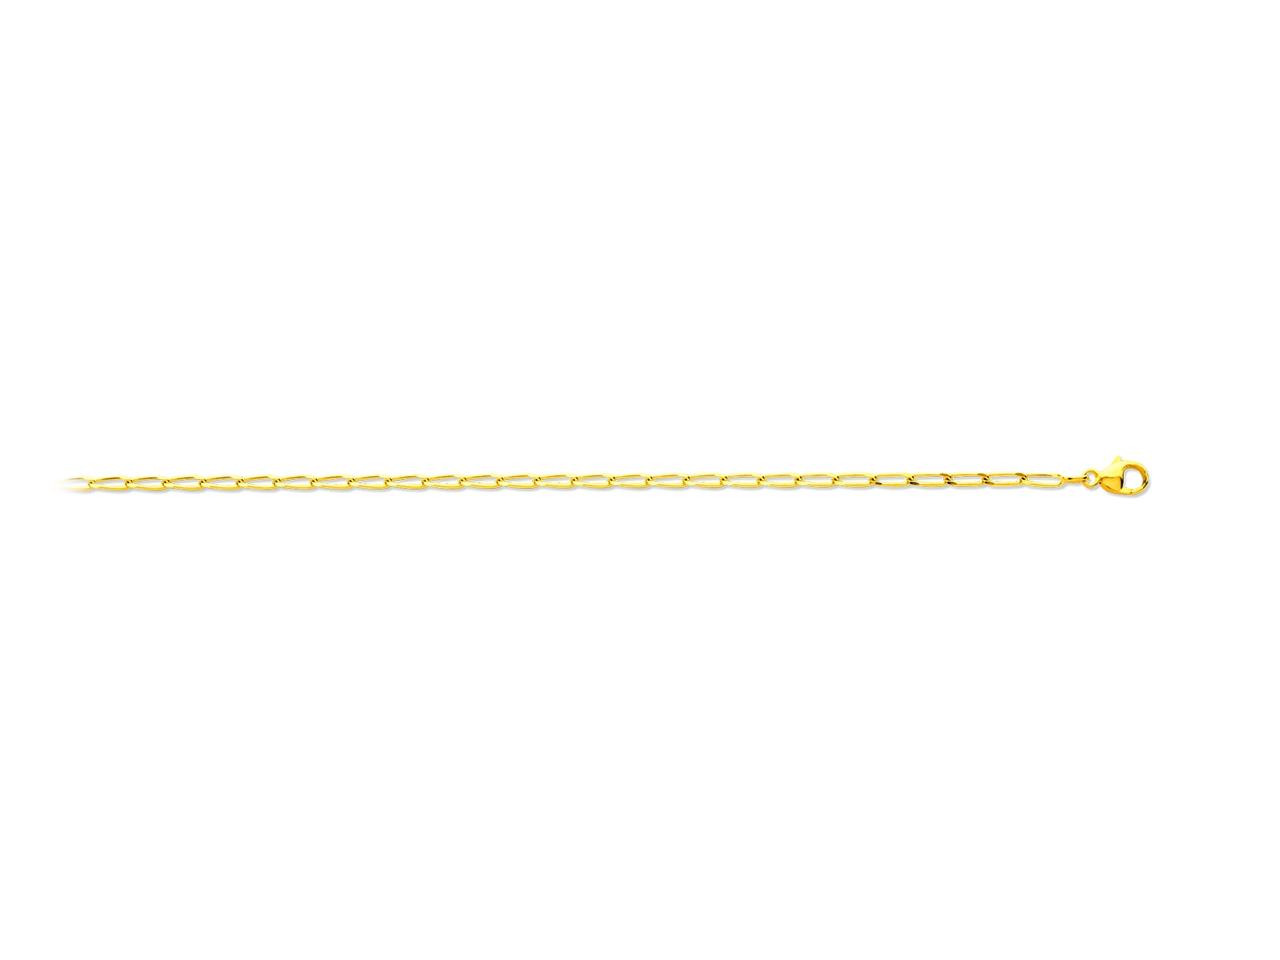 Collier maille cheval, Or jaune 18k, 2 mm, 50 cm